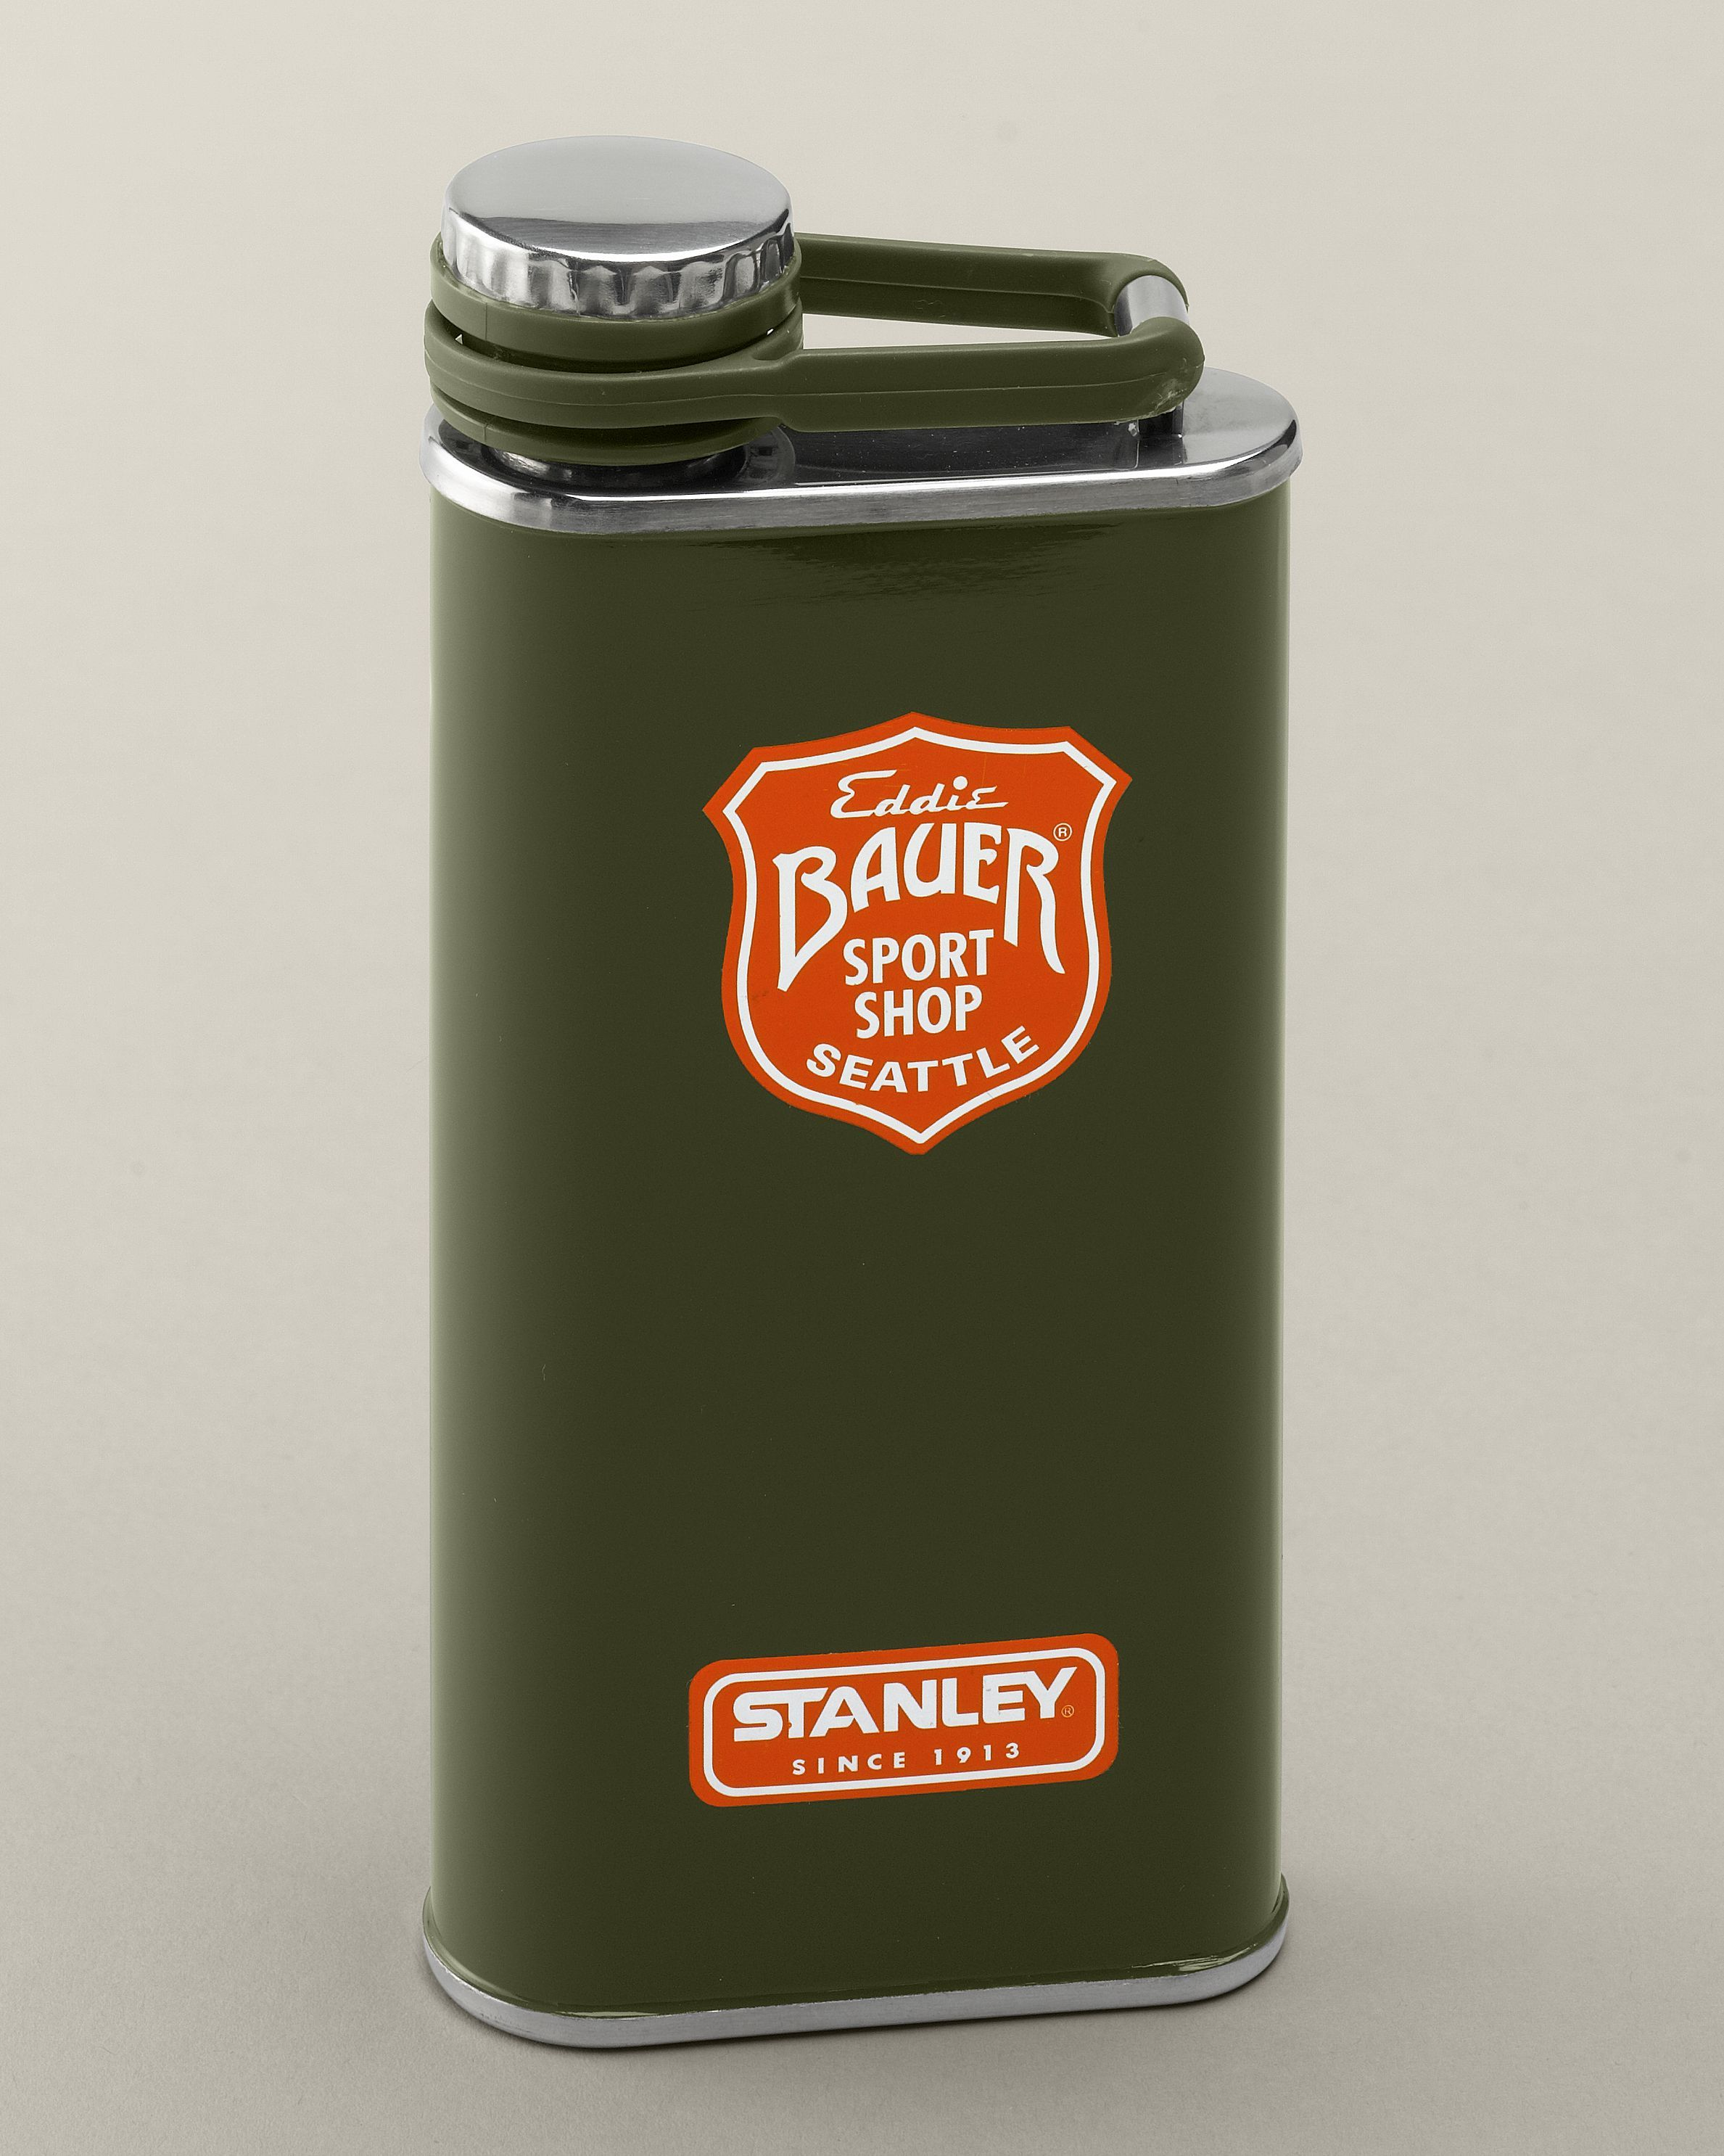 Stanley Flask | Eddie Bauer | Design | Flask, Stanley thermos